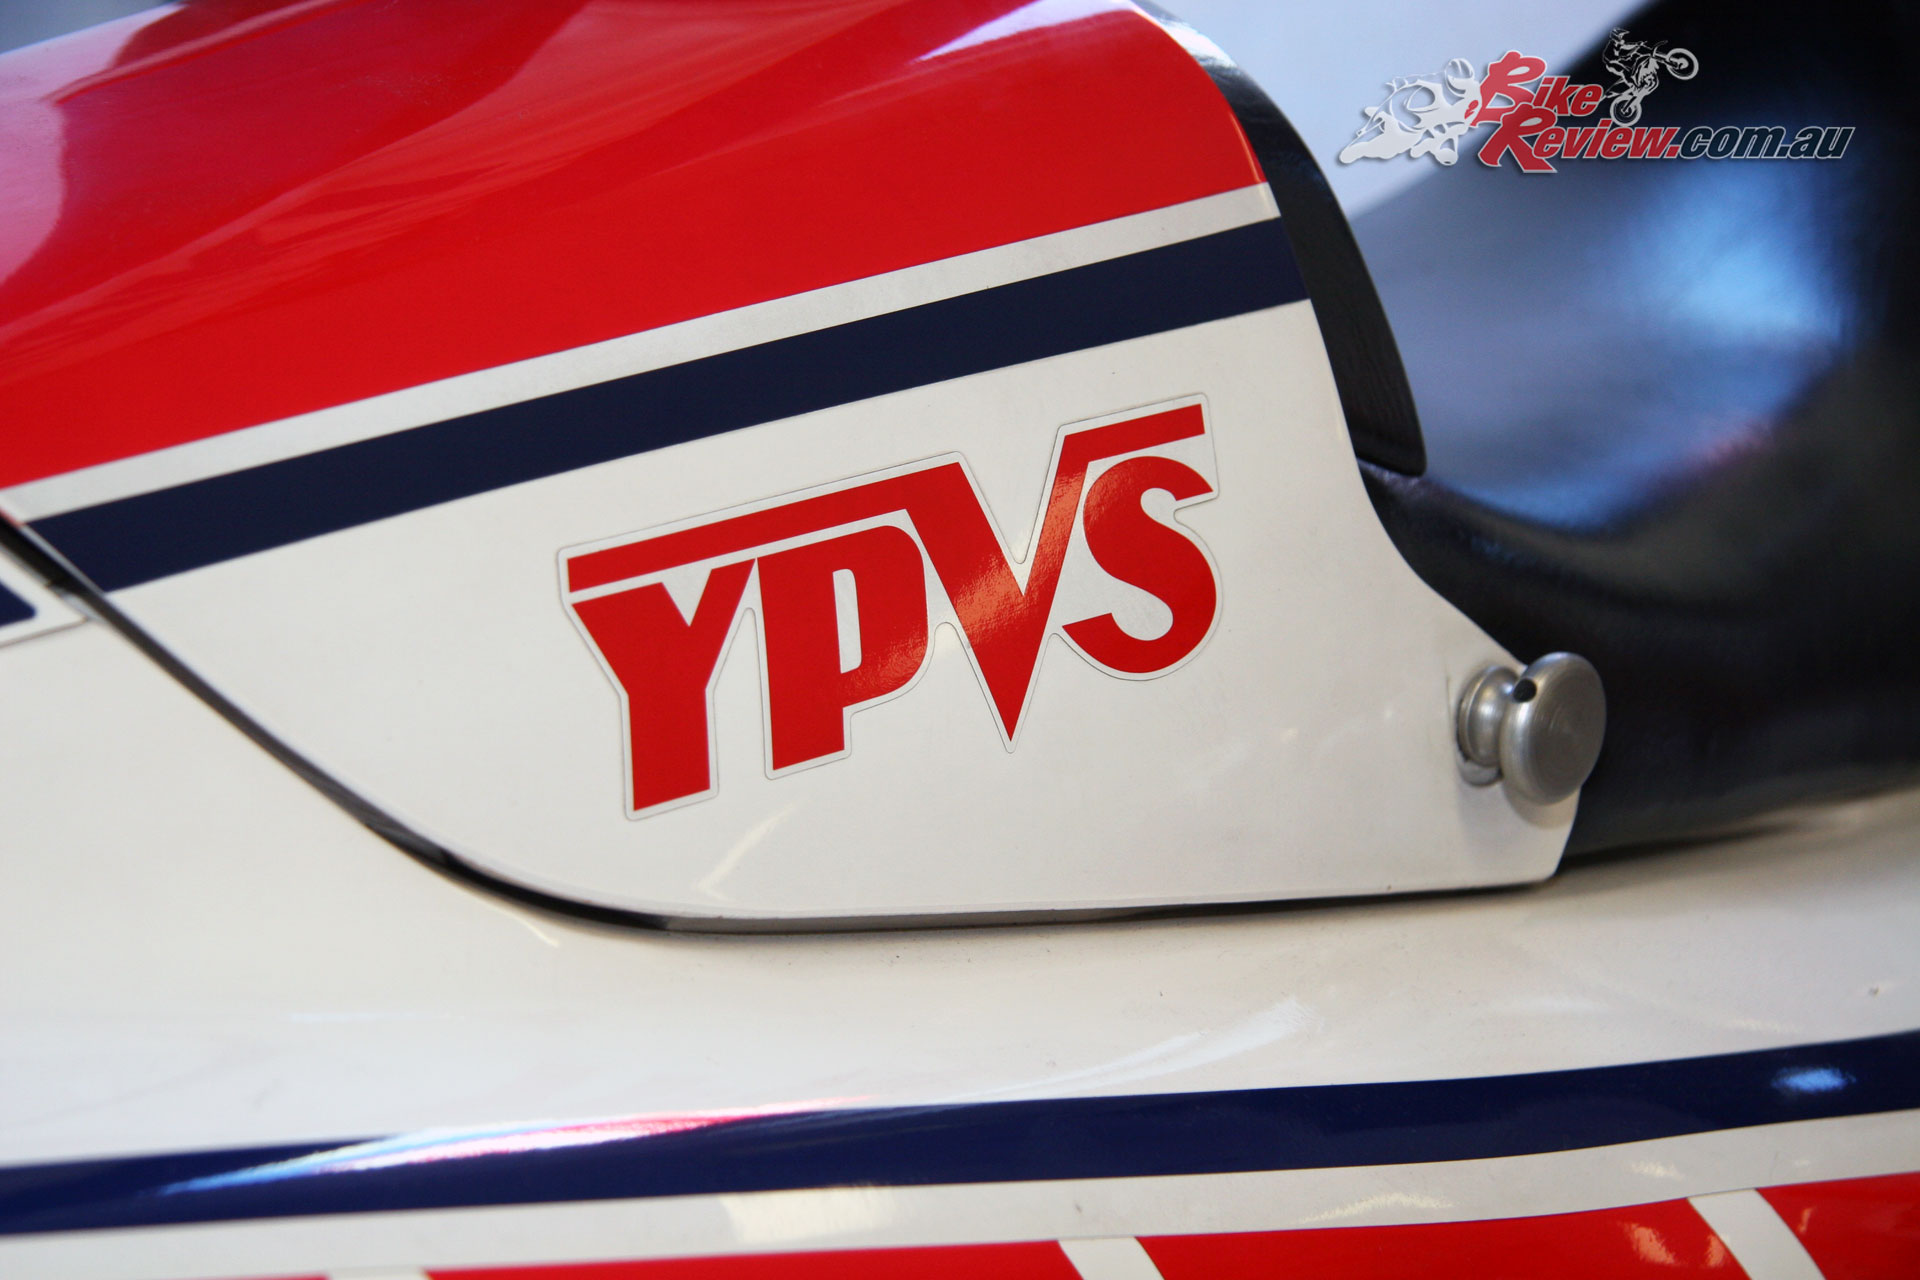 Yamaha chose to go with reed valve induction and a YPVS powervalve system to broaden the powerband of the RZ500